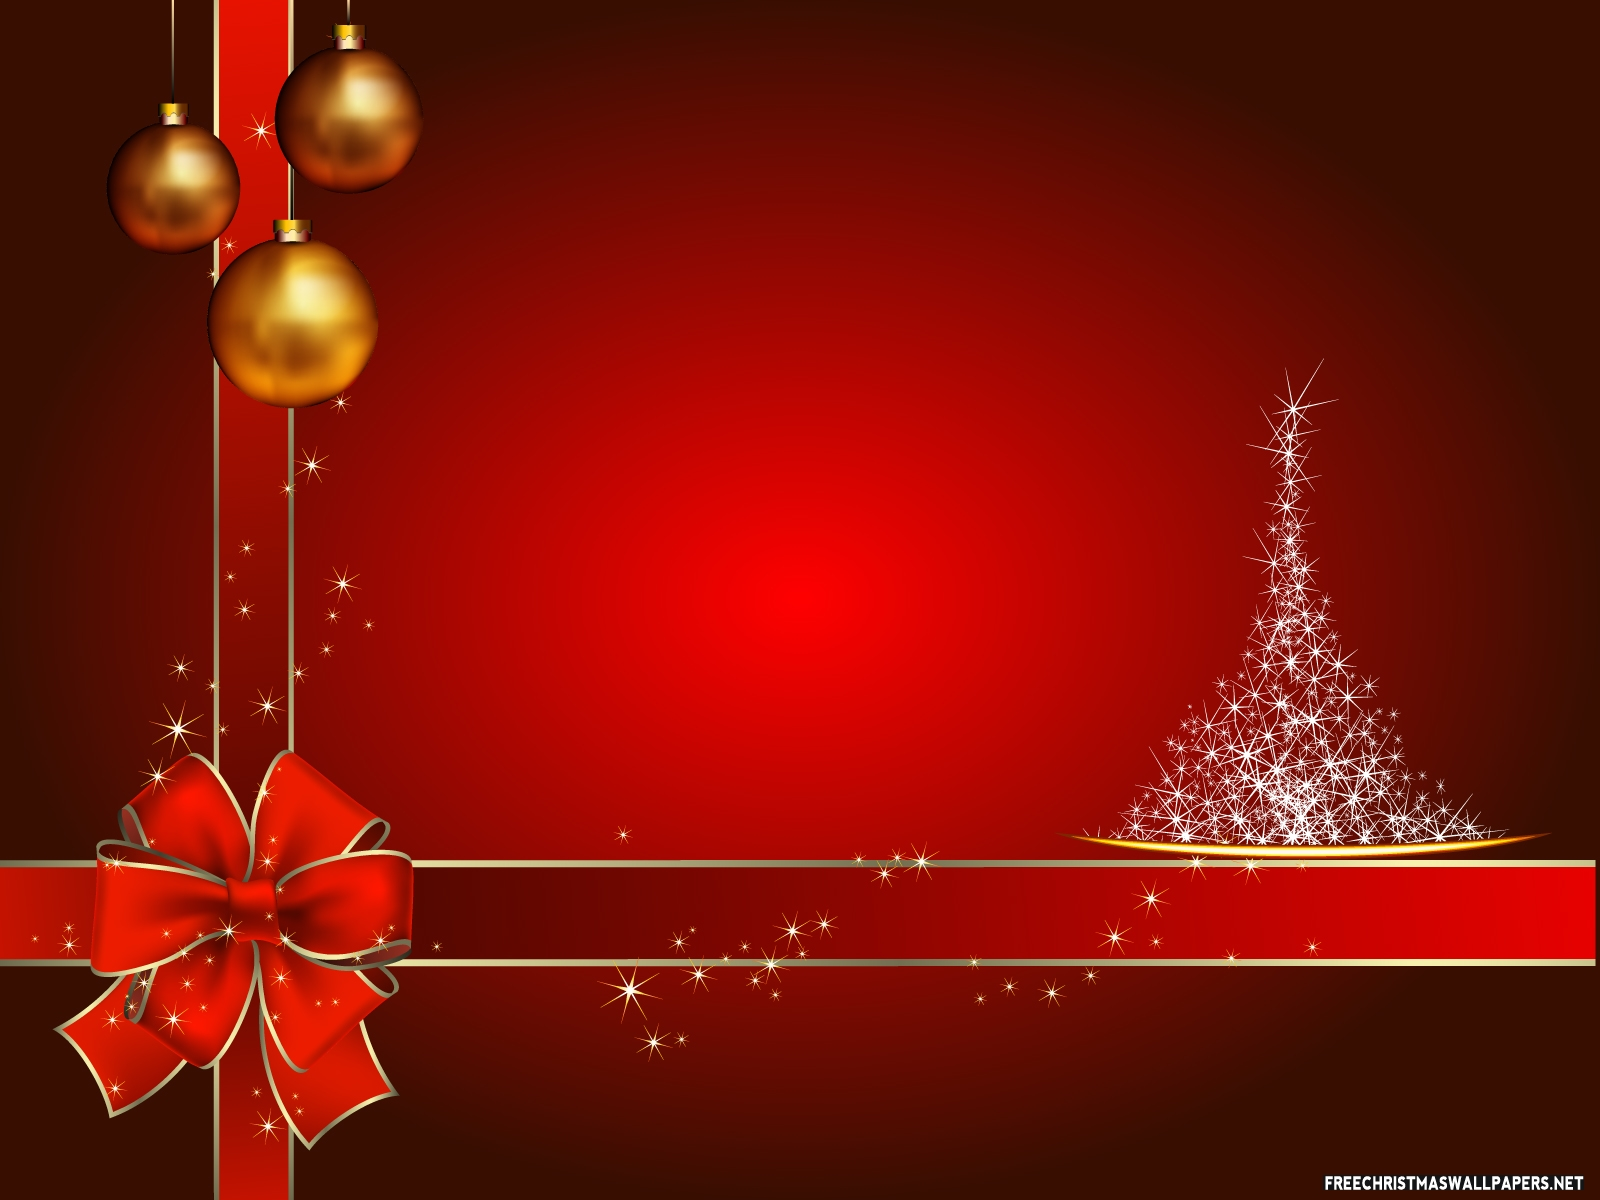 Christmas wallpapers red christmas decorations and gifts on christmas - Free Download Christmas Gift Wallpaper Wallpapers Area